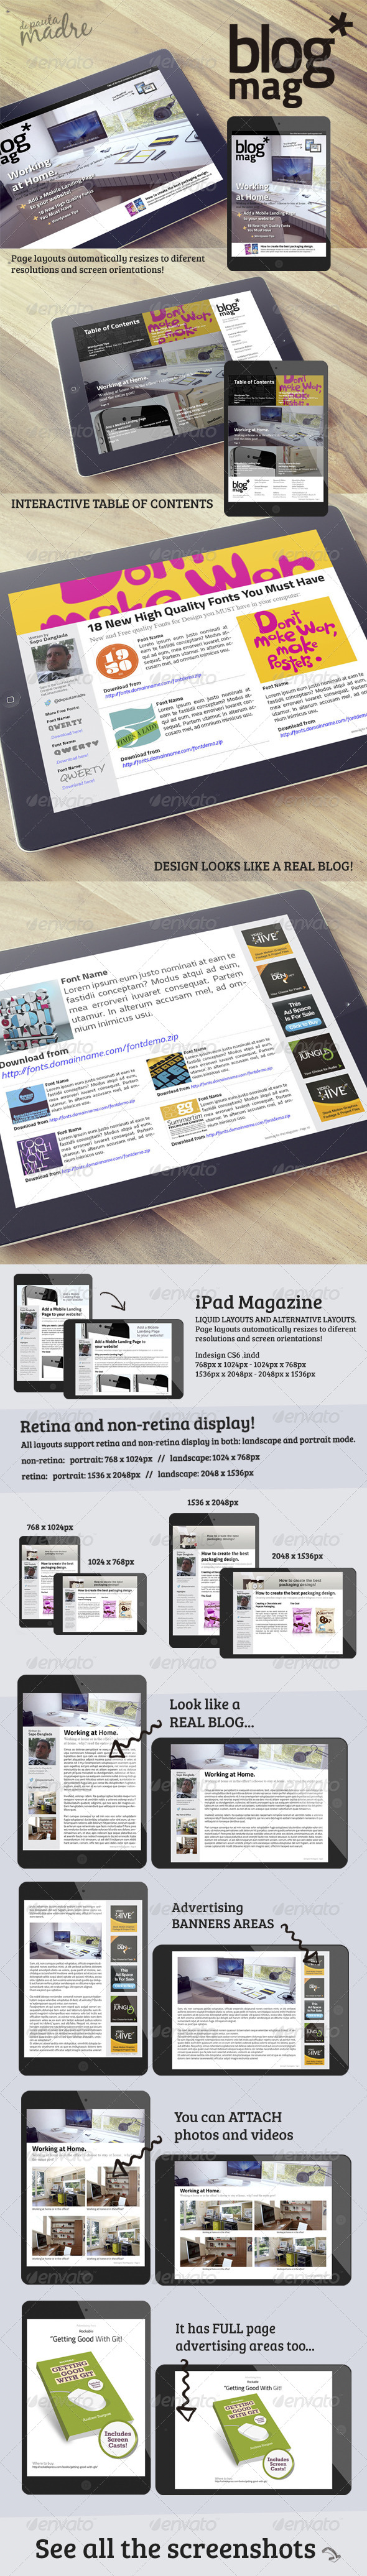 GraphicRiver iPad Magazine that Looks Like a Blog 6737110